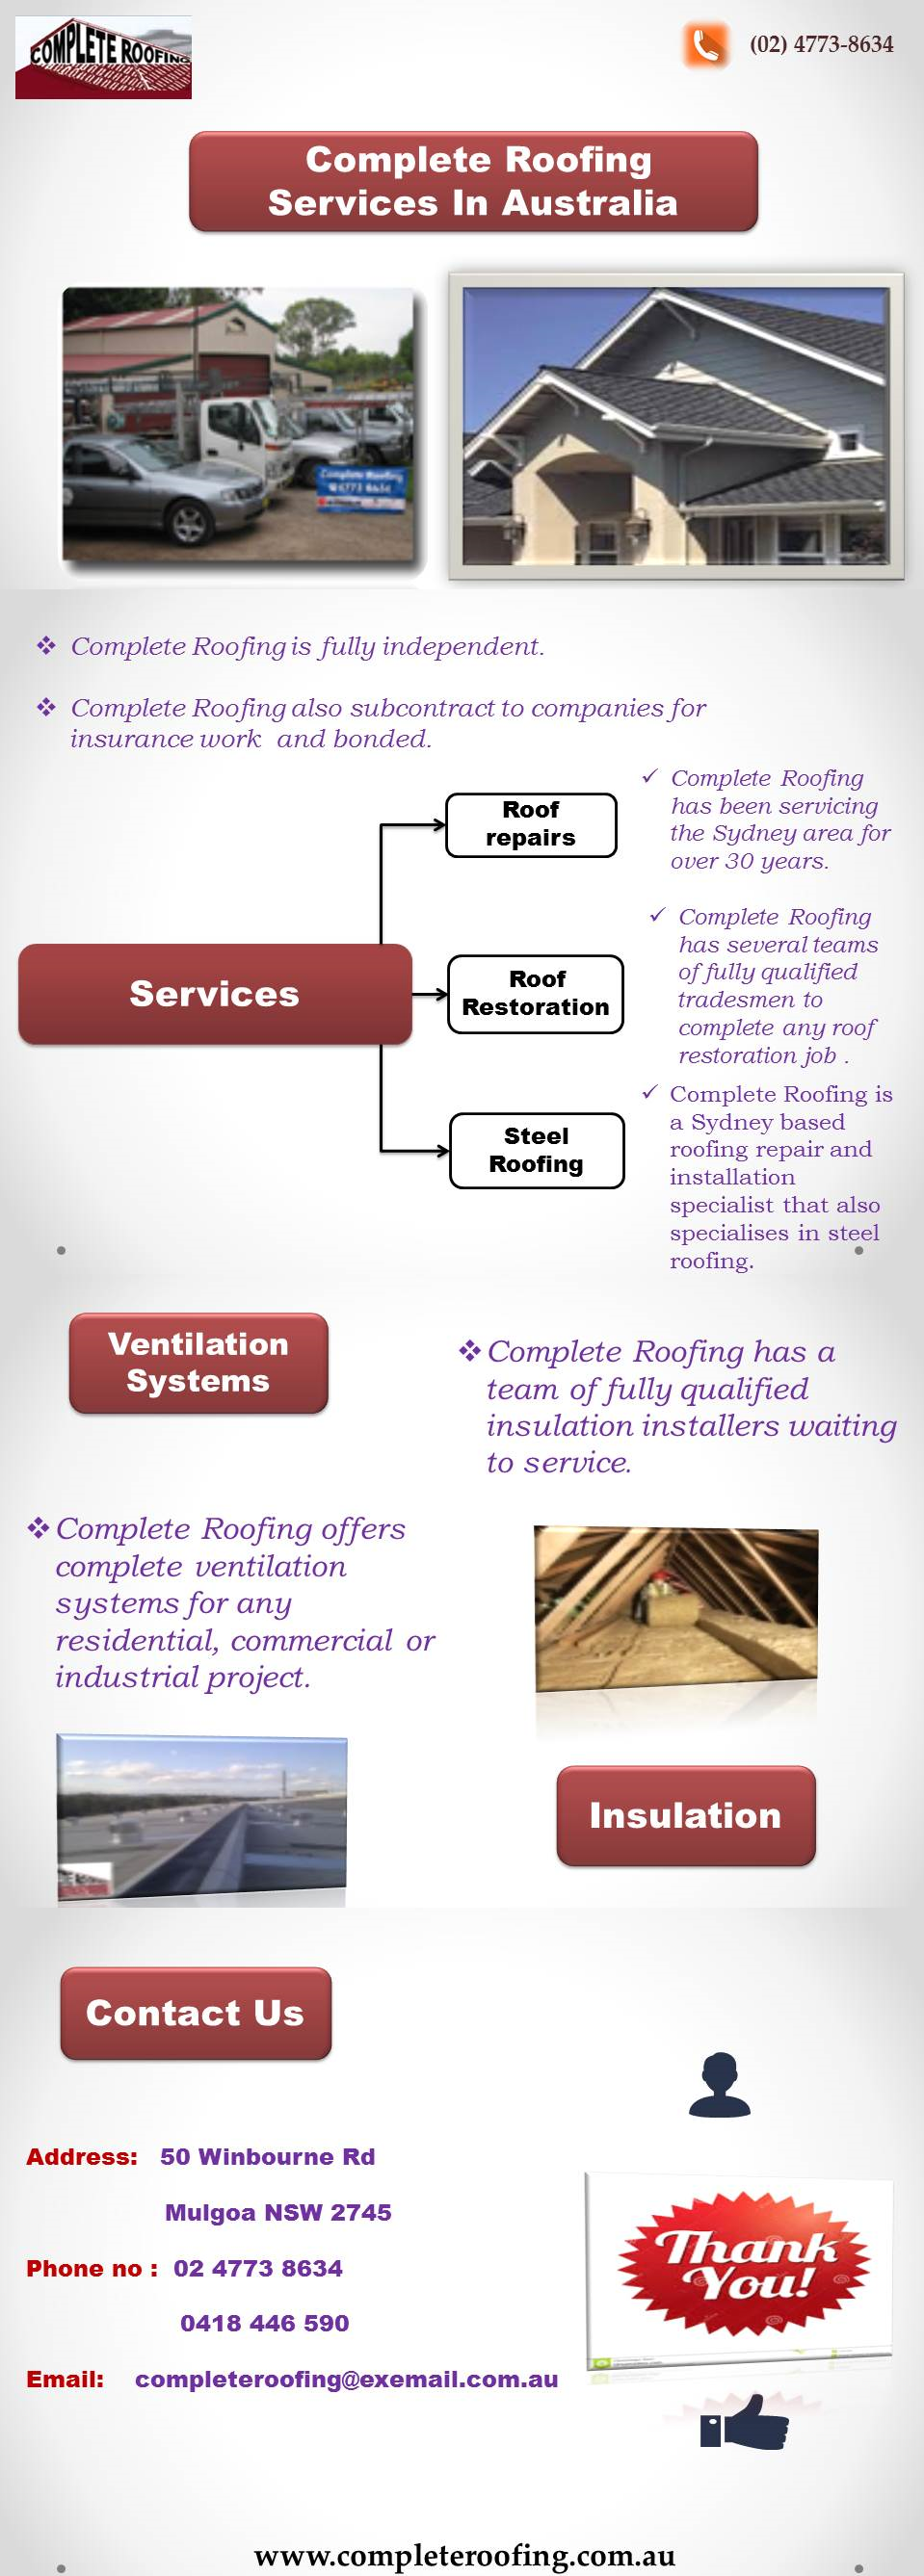 Complete Roofing offers roof restoration and replacement ...